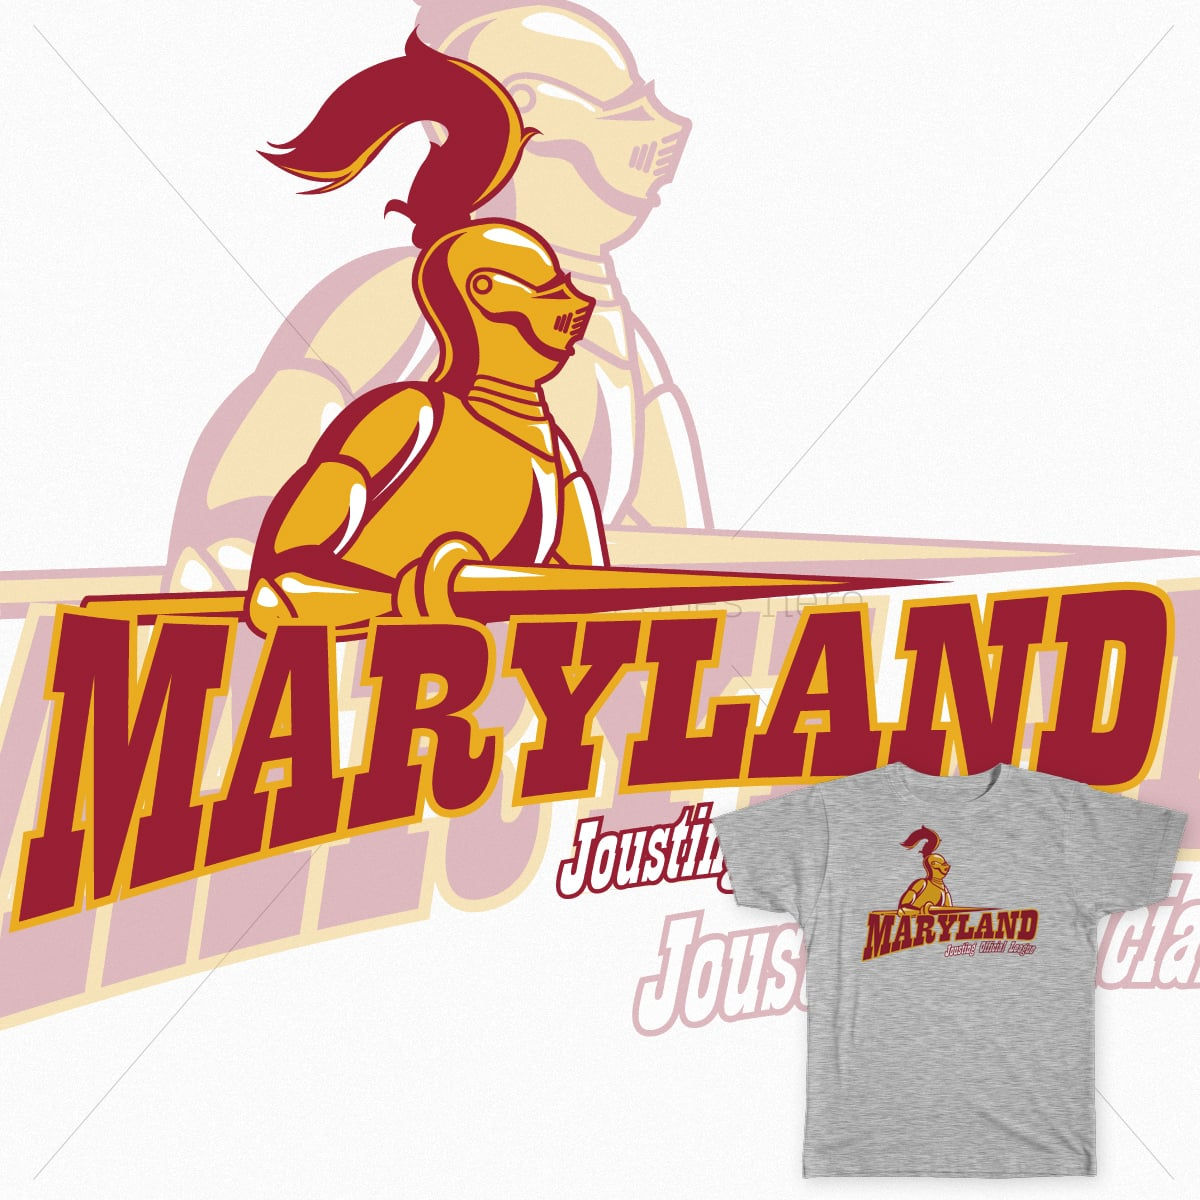 Maryland Official Jousting League by salvatrane on Threadless